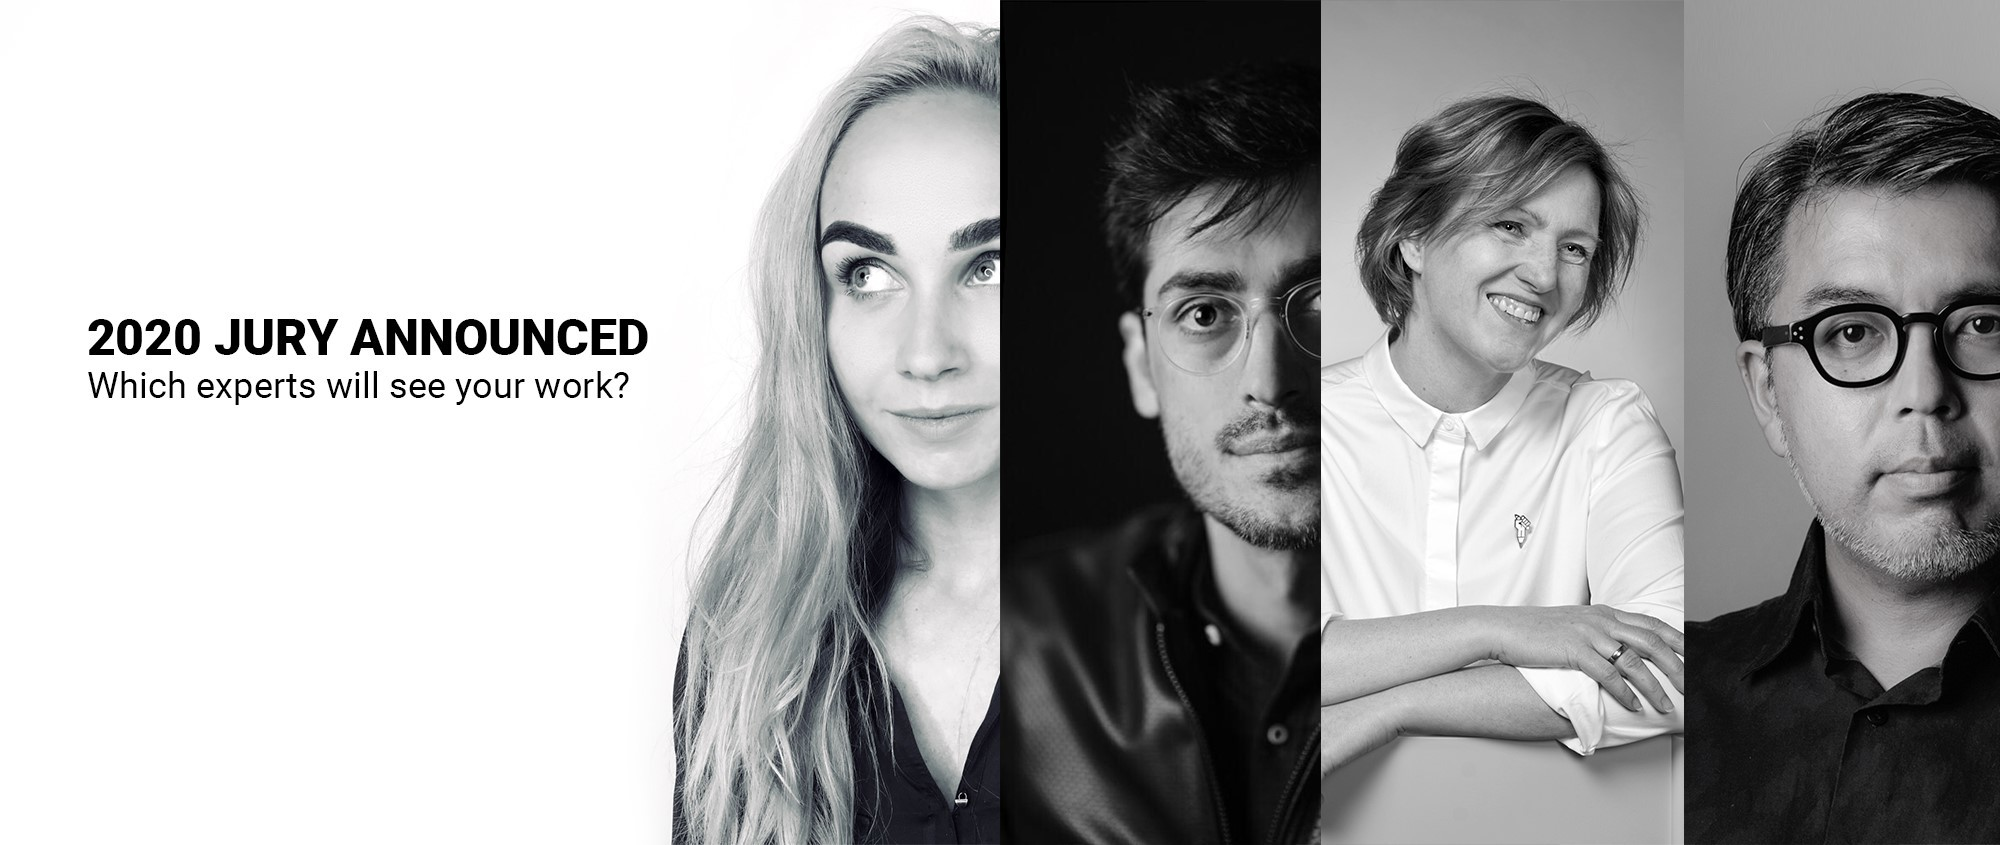 2020 Jury Announced: Which experts will see your work?